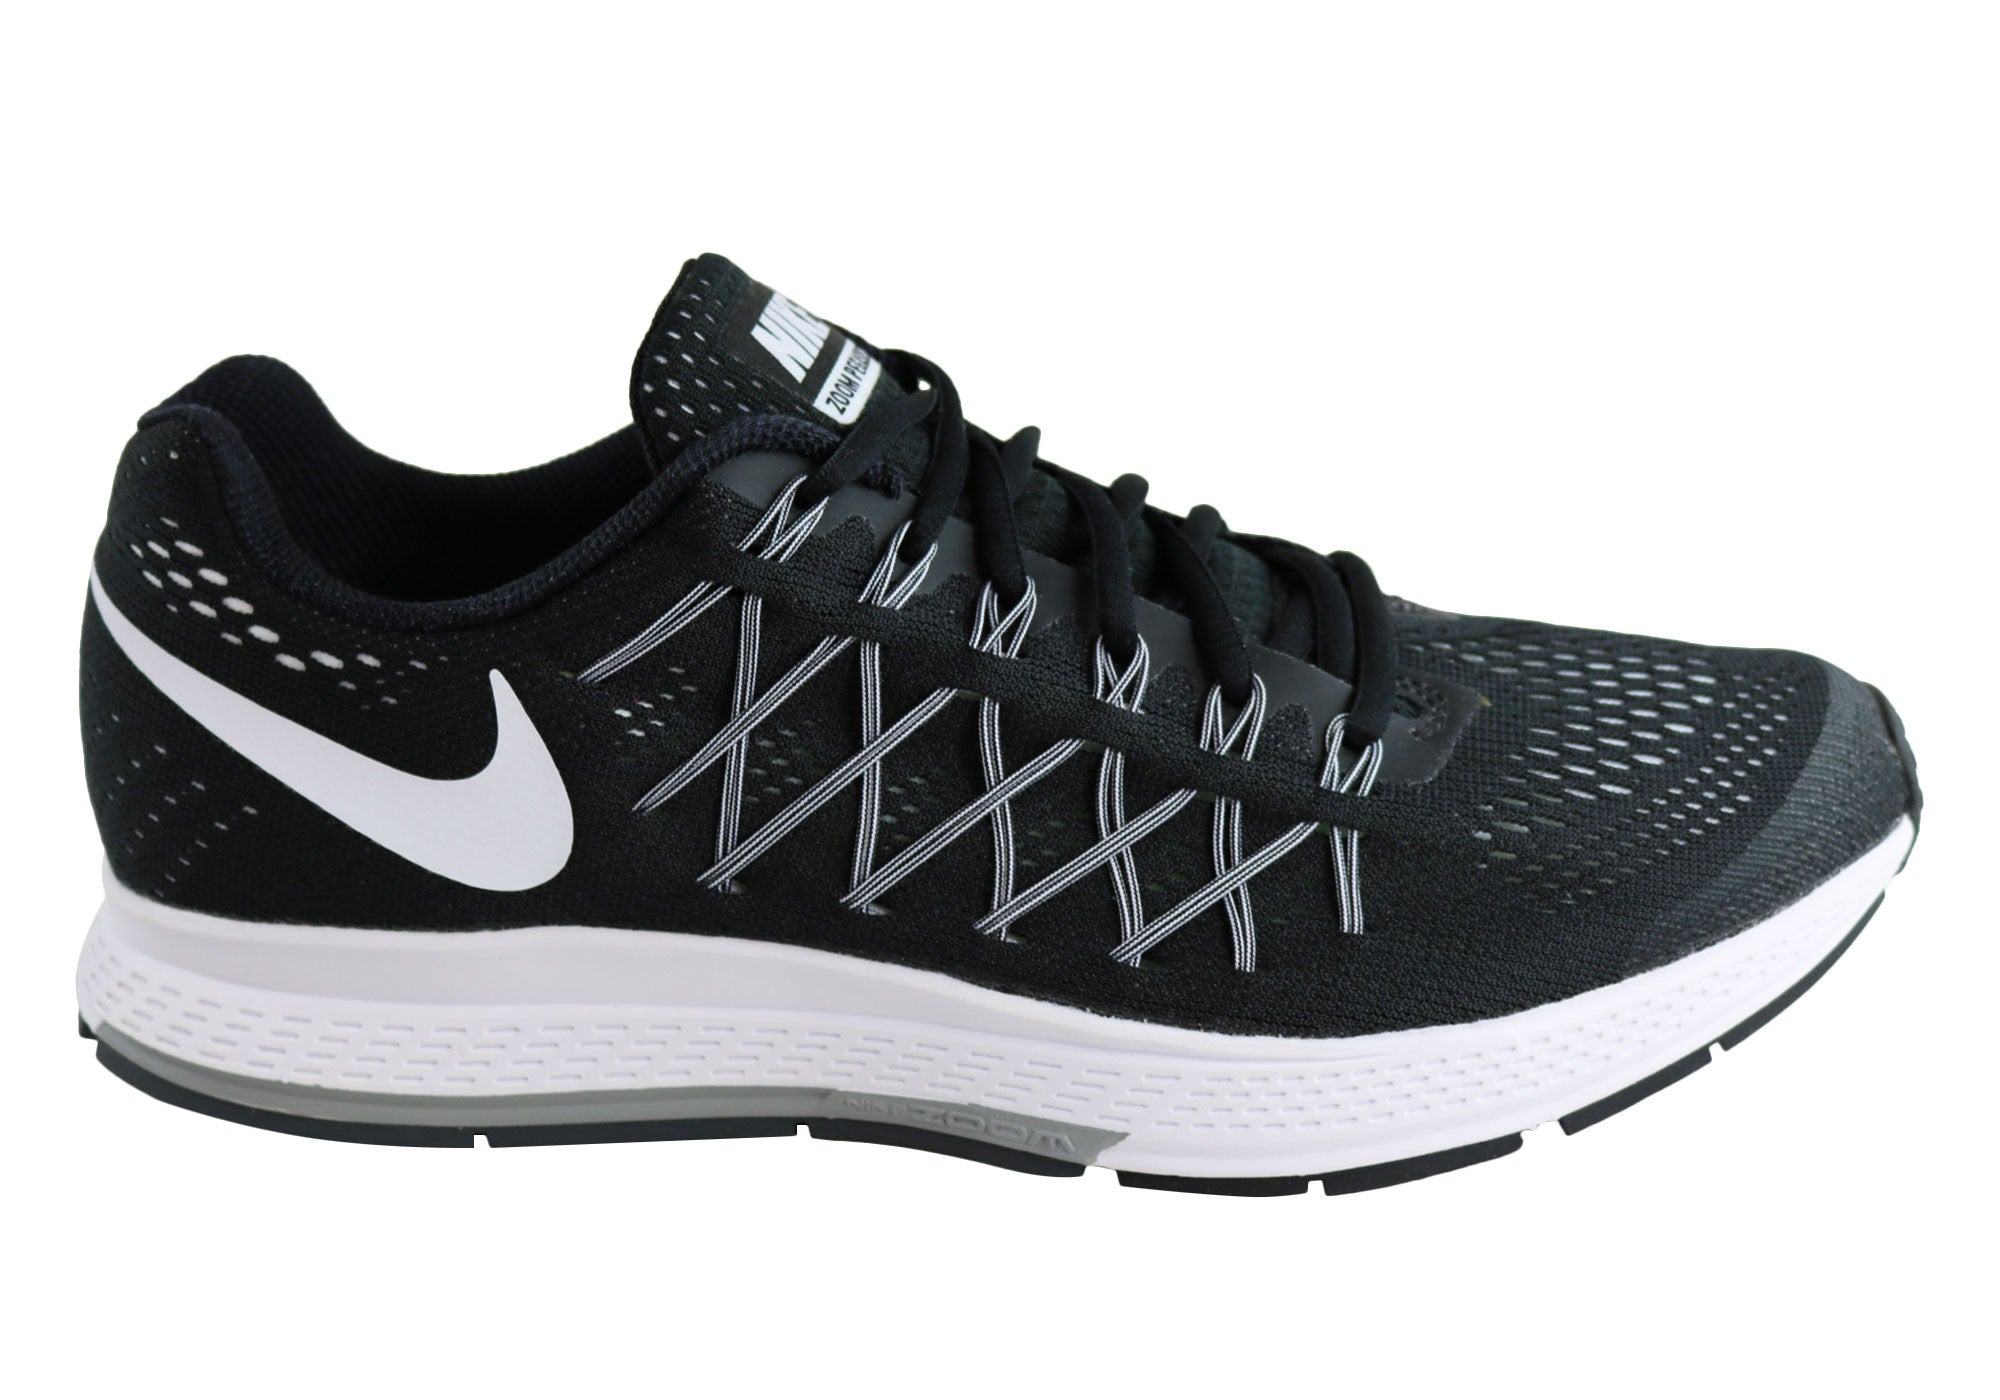 2a8190fd477a2 Nike Mens Air Zoom Pegasus 32 Premium Cushioned Sports/Running Shoes